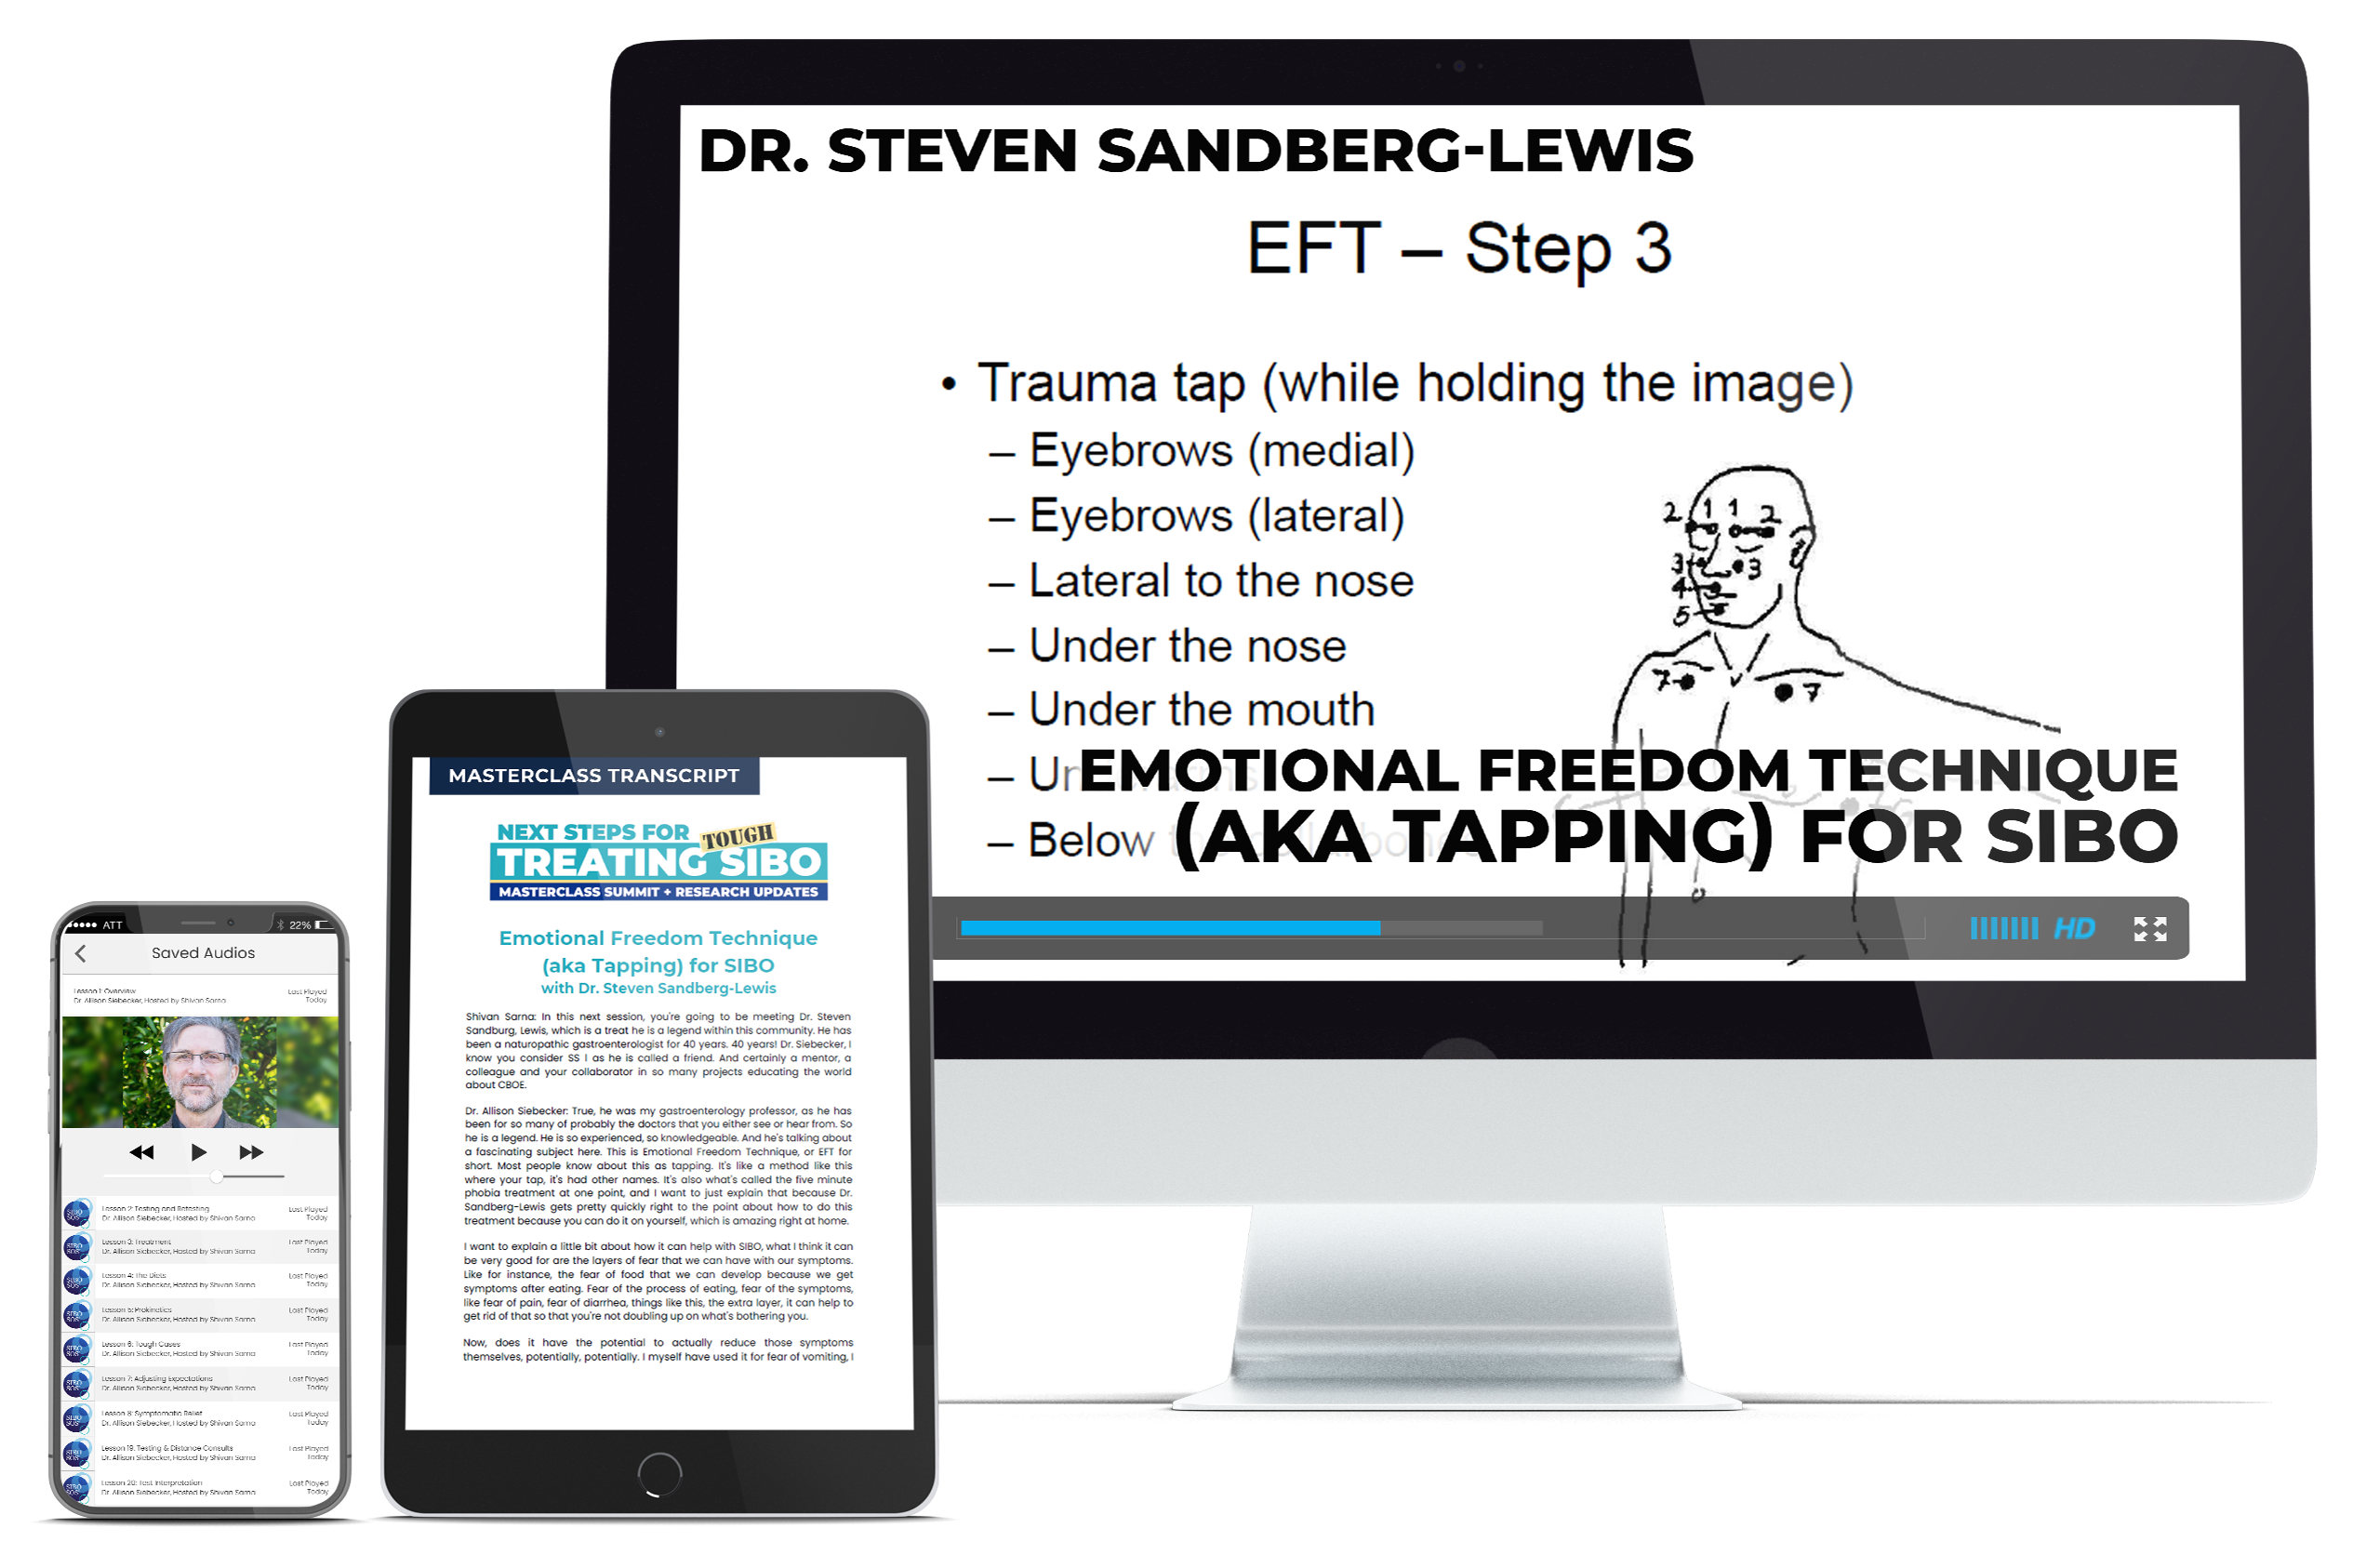 Emotional Freedom Technique (aka Tapping) for SIBO with Dr. Steven Sandberg-Lewis 